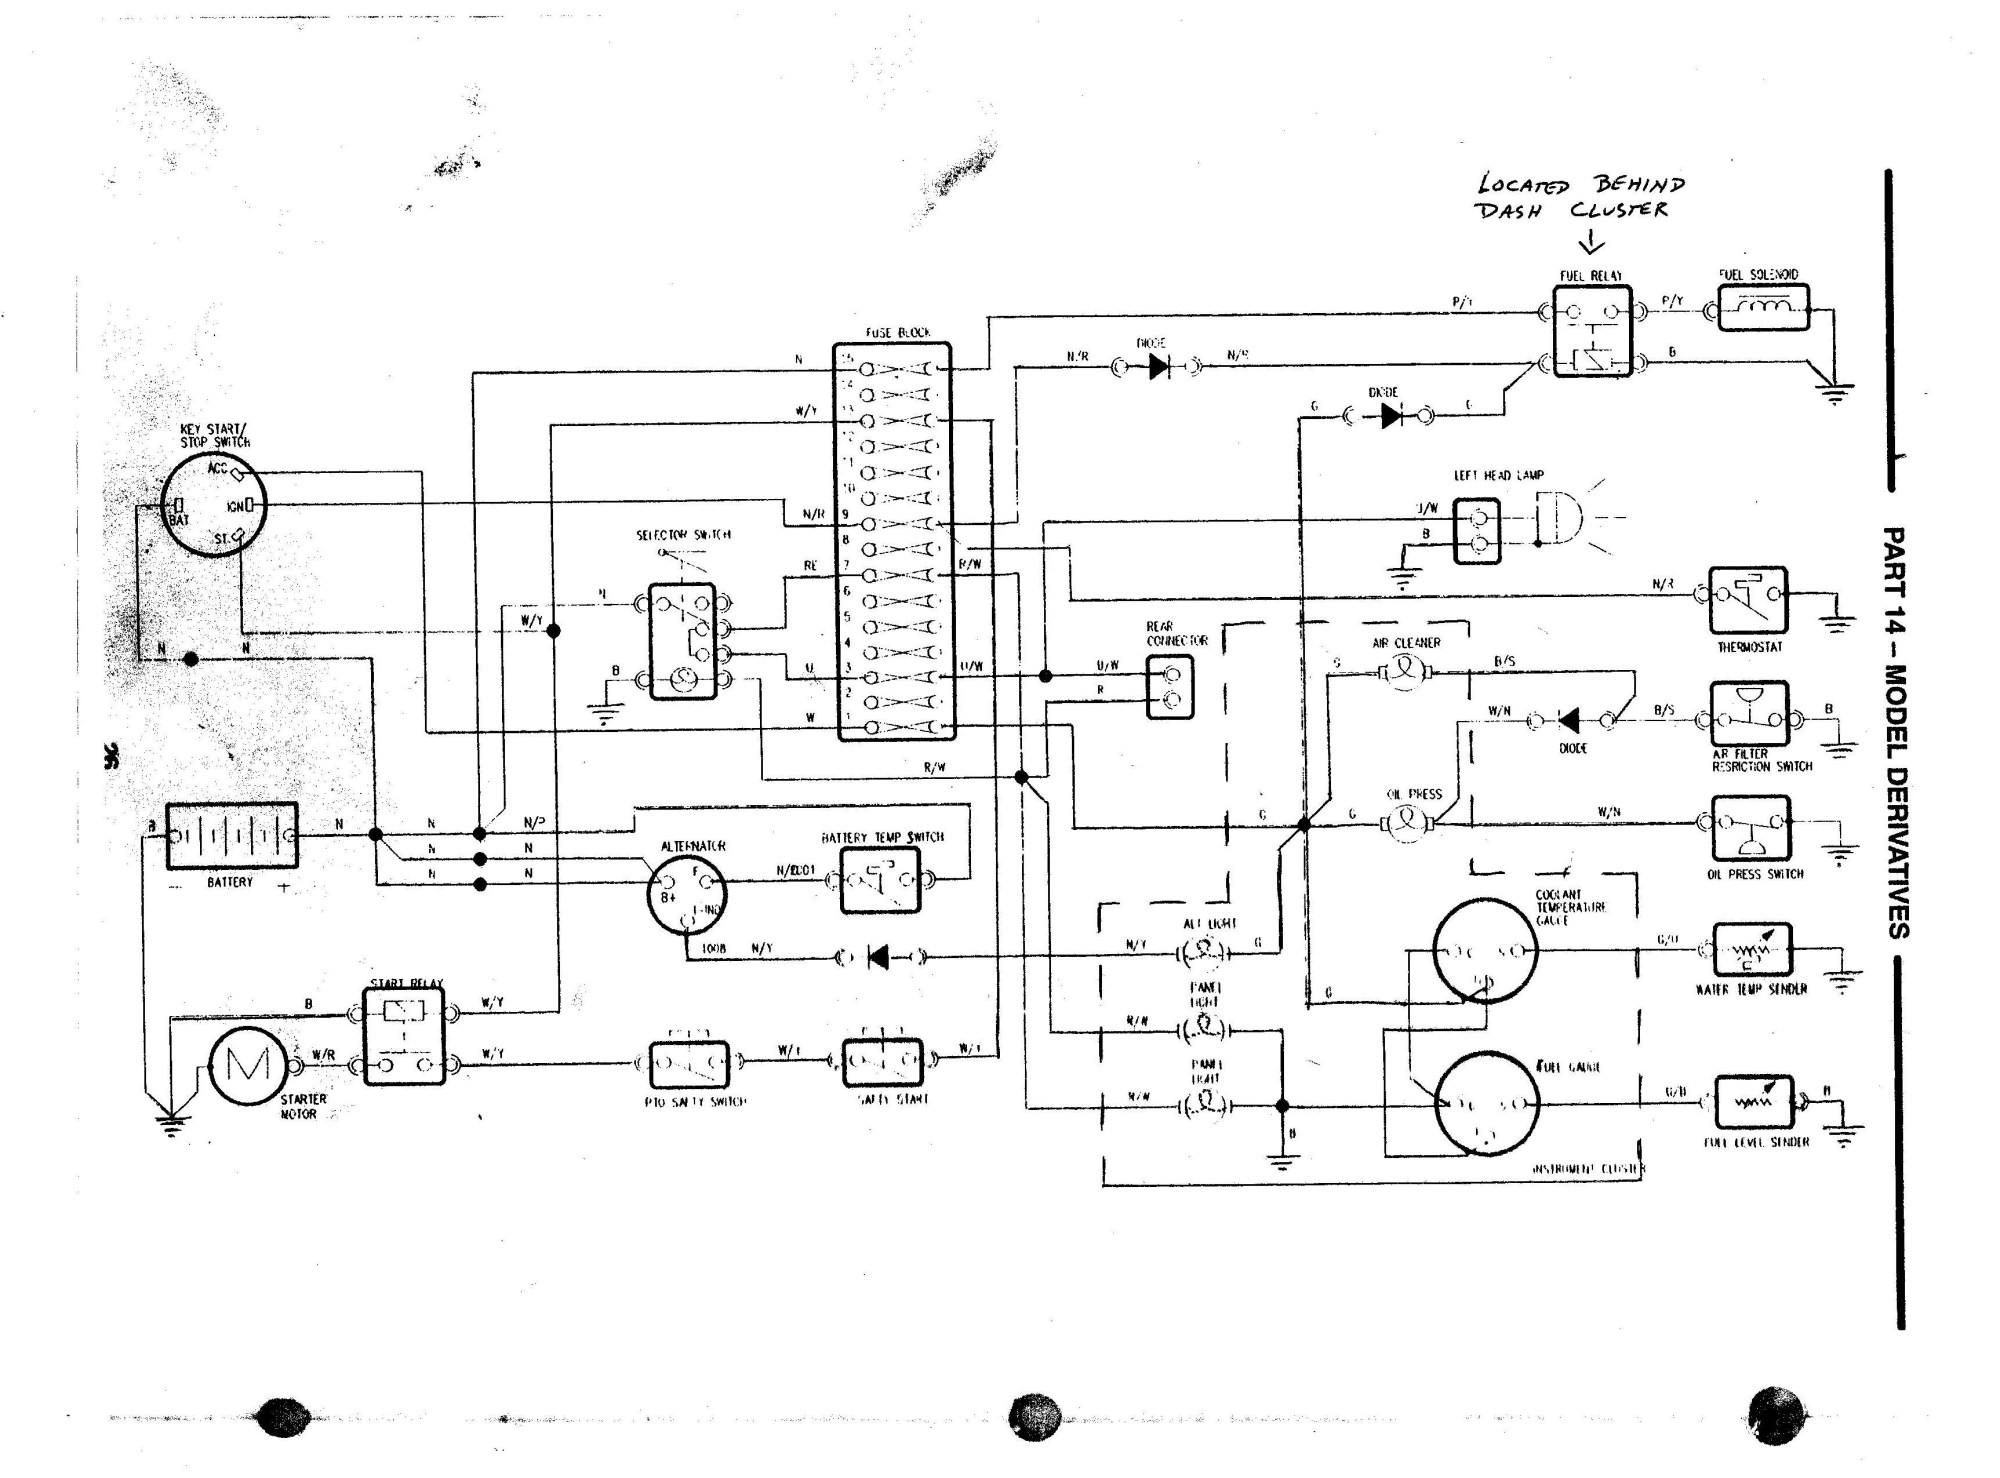 hight resolution of chevy s10 parts diagram ford 3230 wiring diagram wiring diagram of chevy s10 parts diagram 4l60e